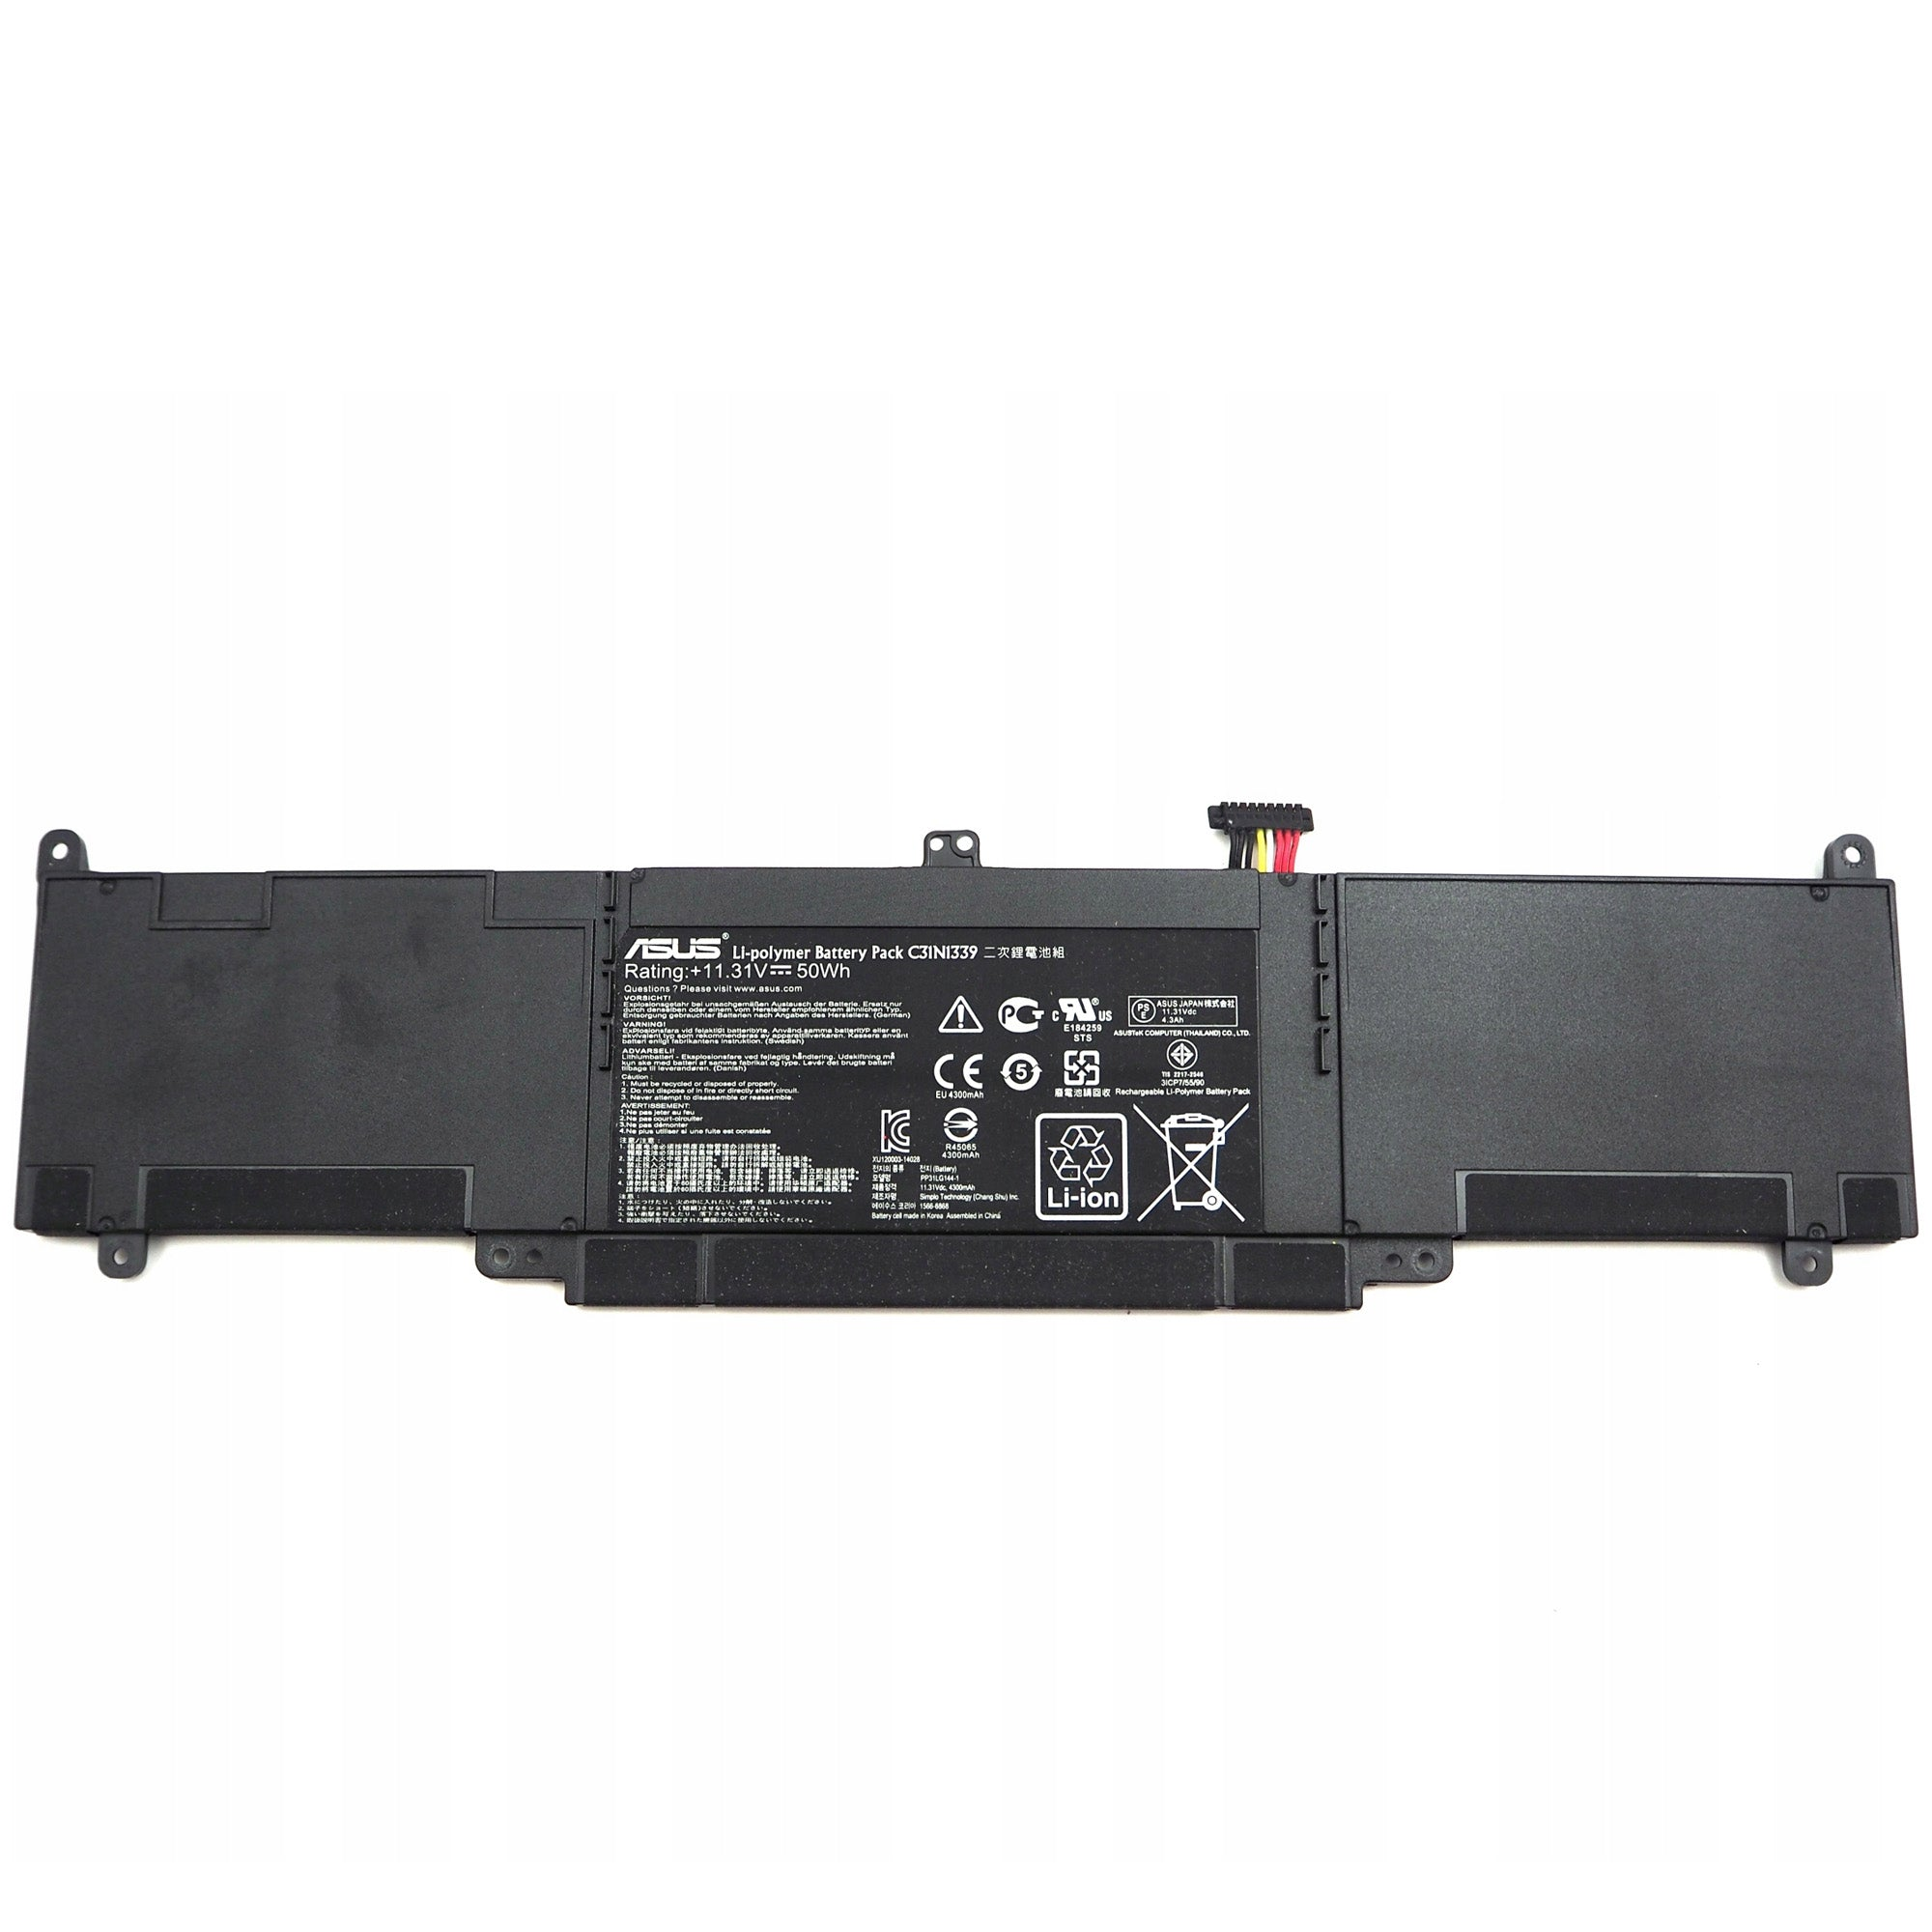 ASUS ZenBook C31N1339 4300mAh 3 Cell Battery